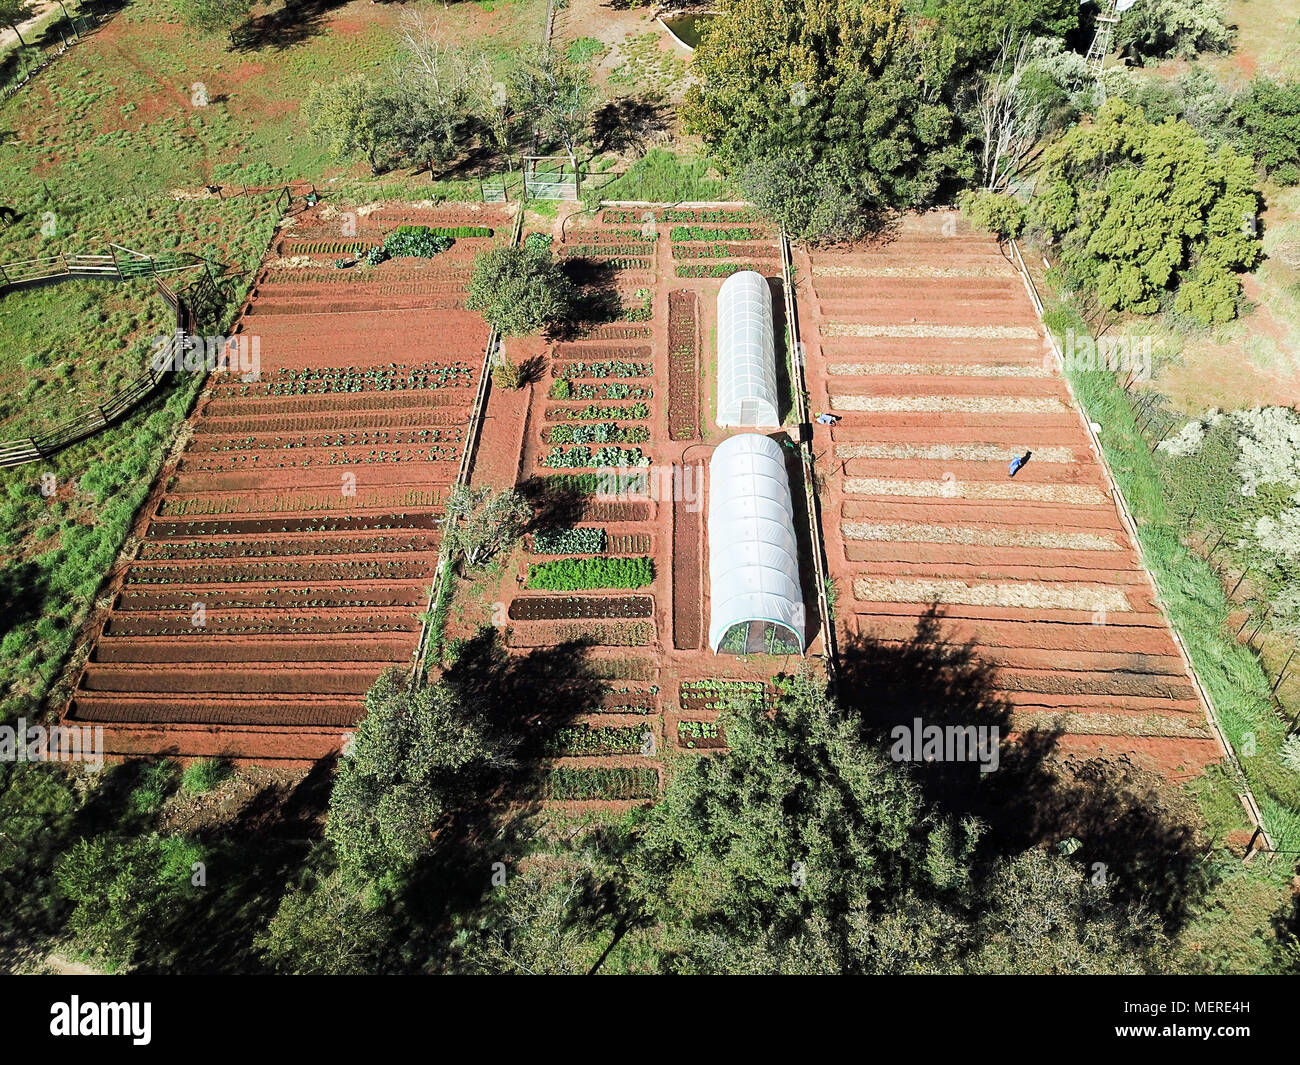 Drone footage rural vegetable garden aerial view of organic vegetable garden - Stock Image